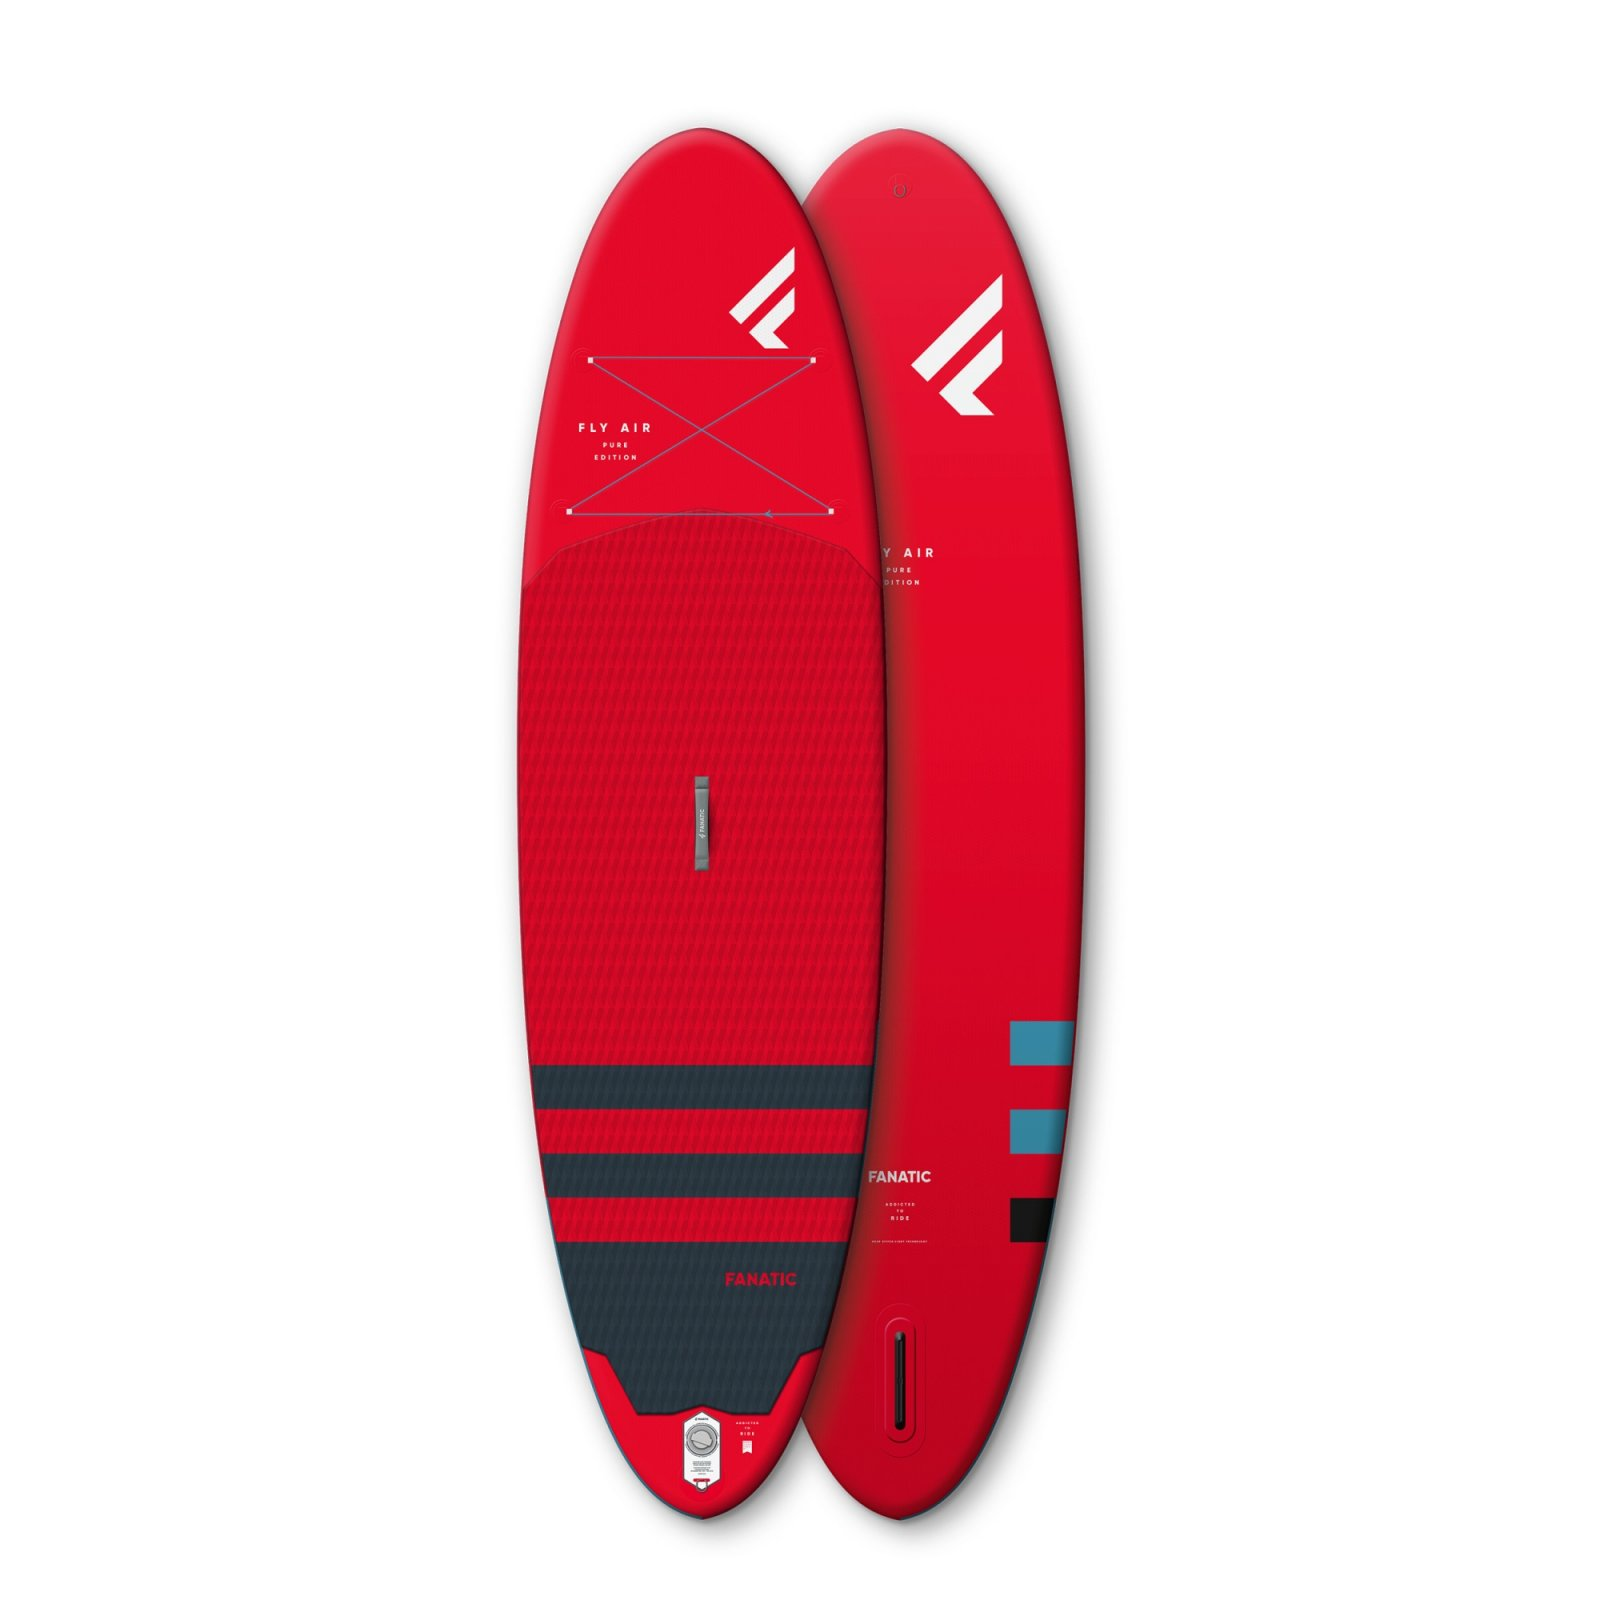 Fanatic Fly Air 10'4 Inflatable Stand Up Paddleboard